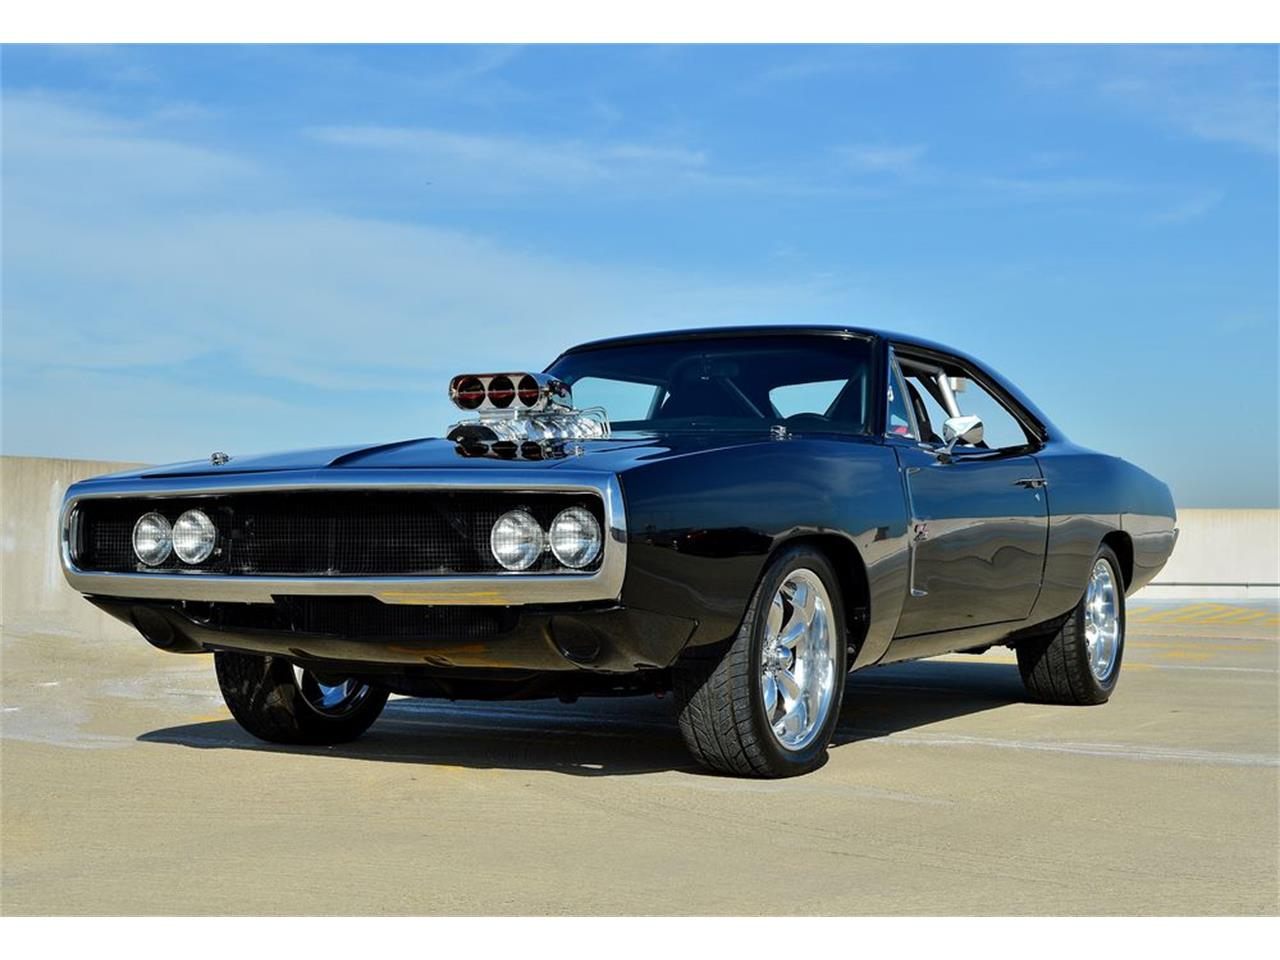 1968 Dodge Charger Fast N Furious Movie Car for Sale   ClassicCars.com    CC-968915